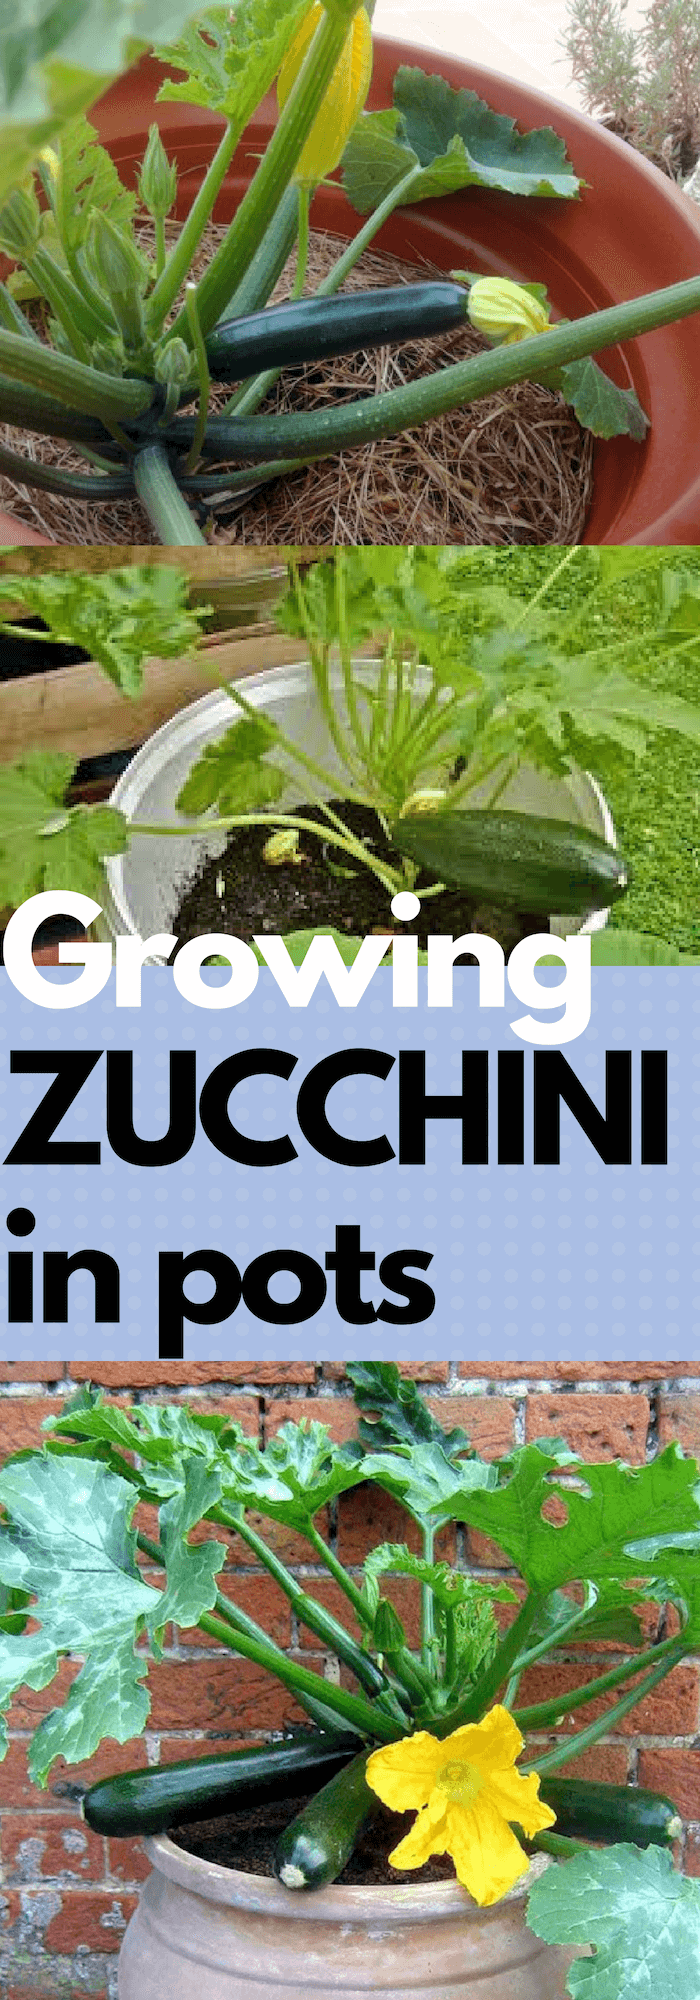 How to grow Zucchini or squashes in pots